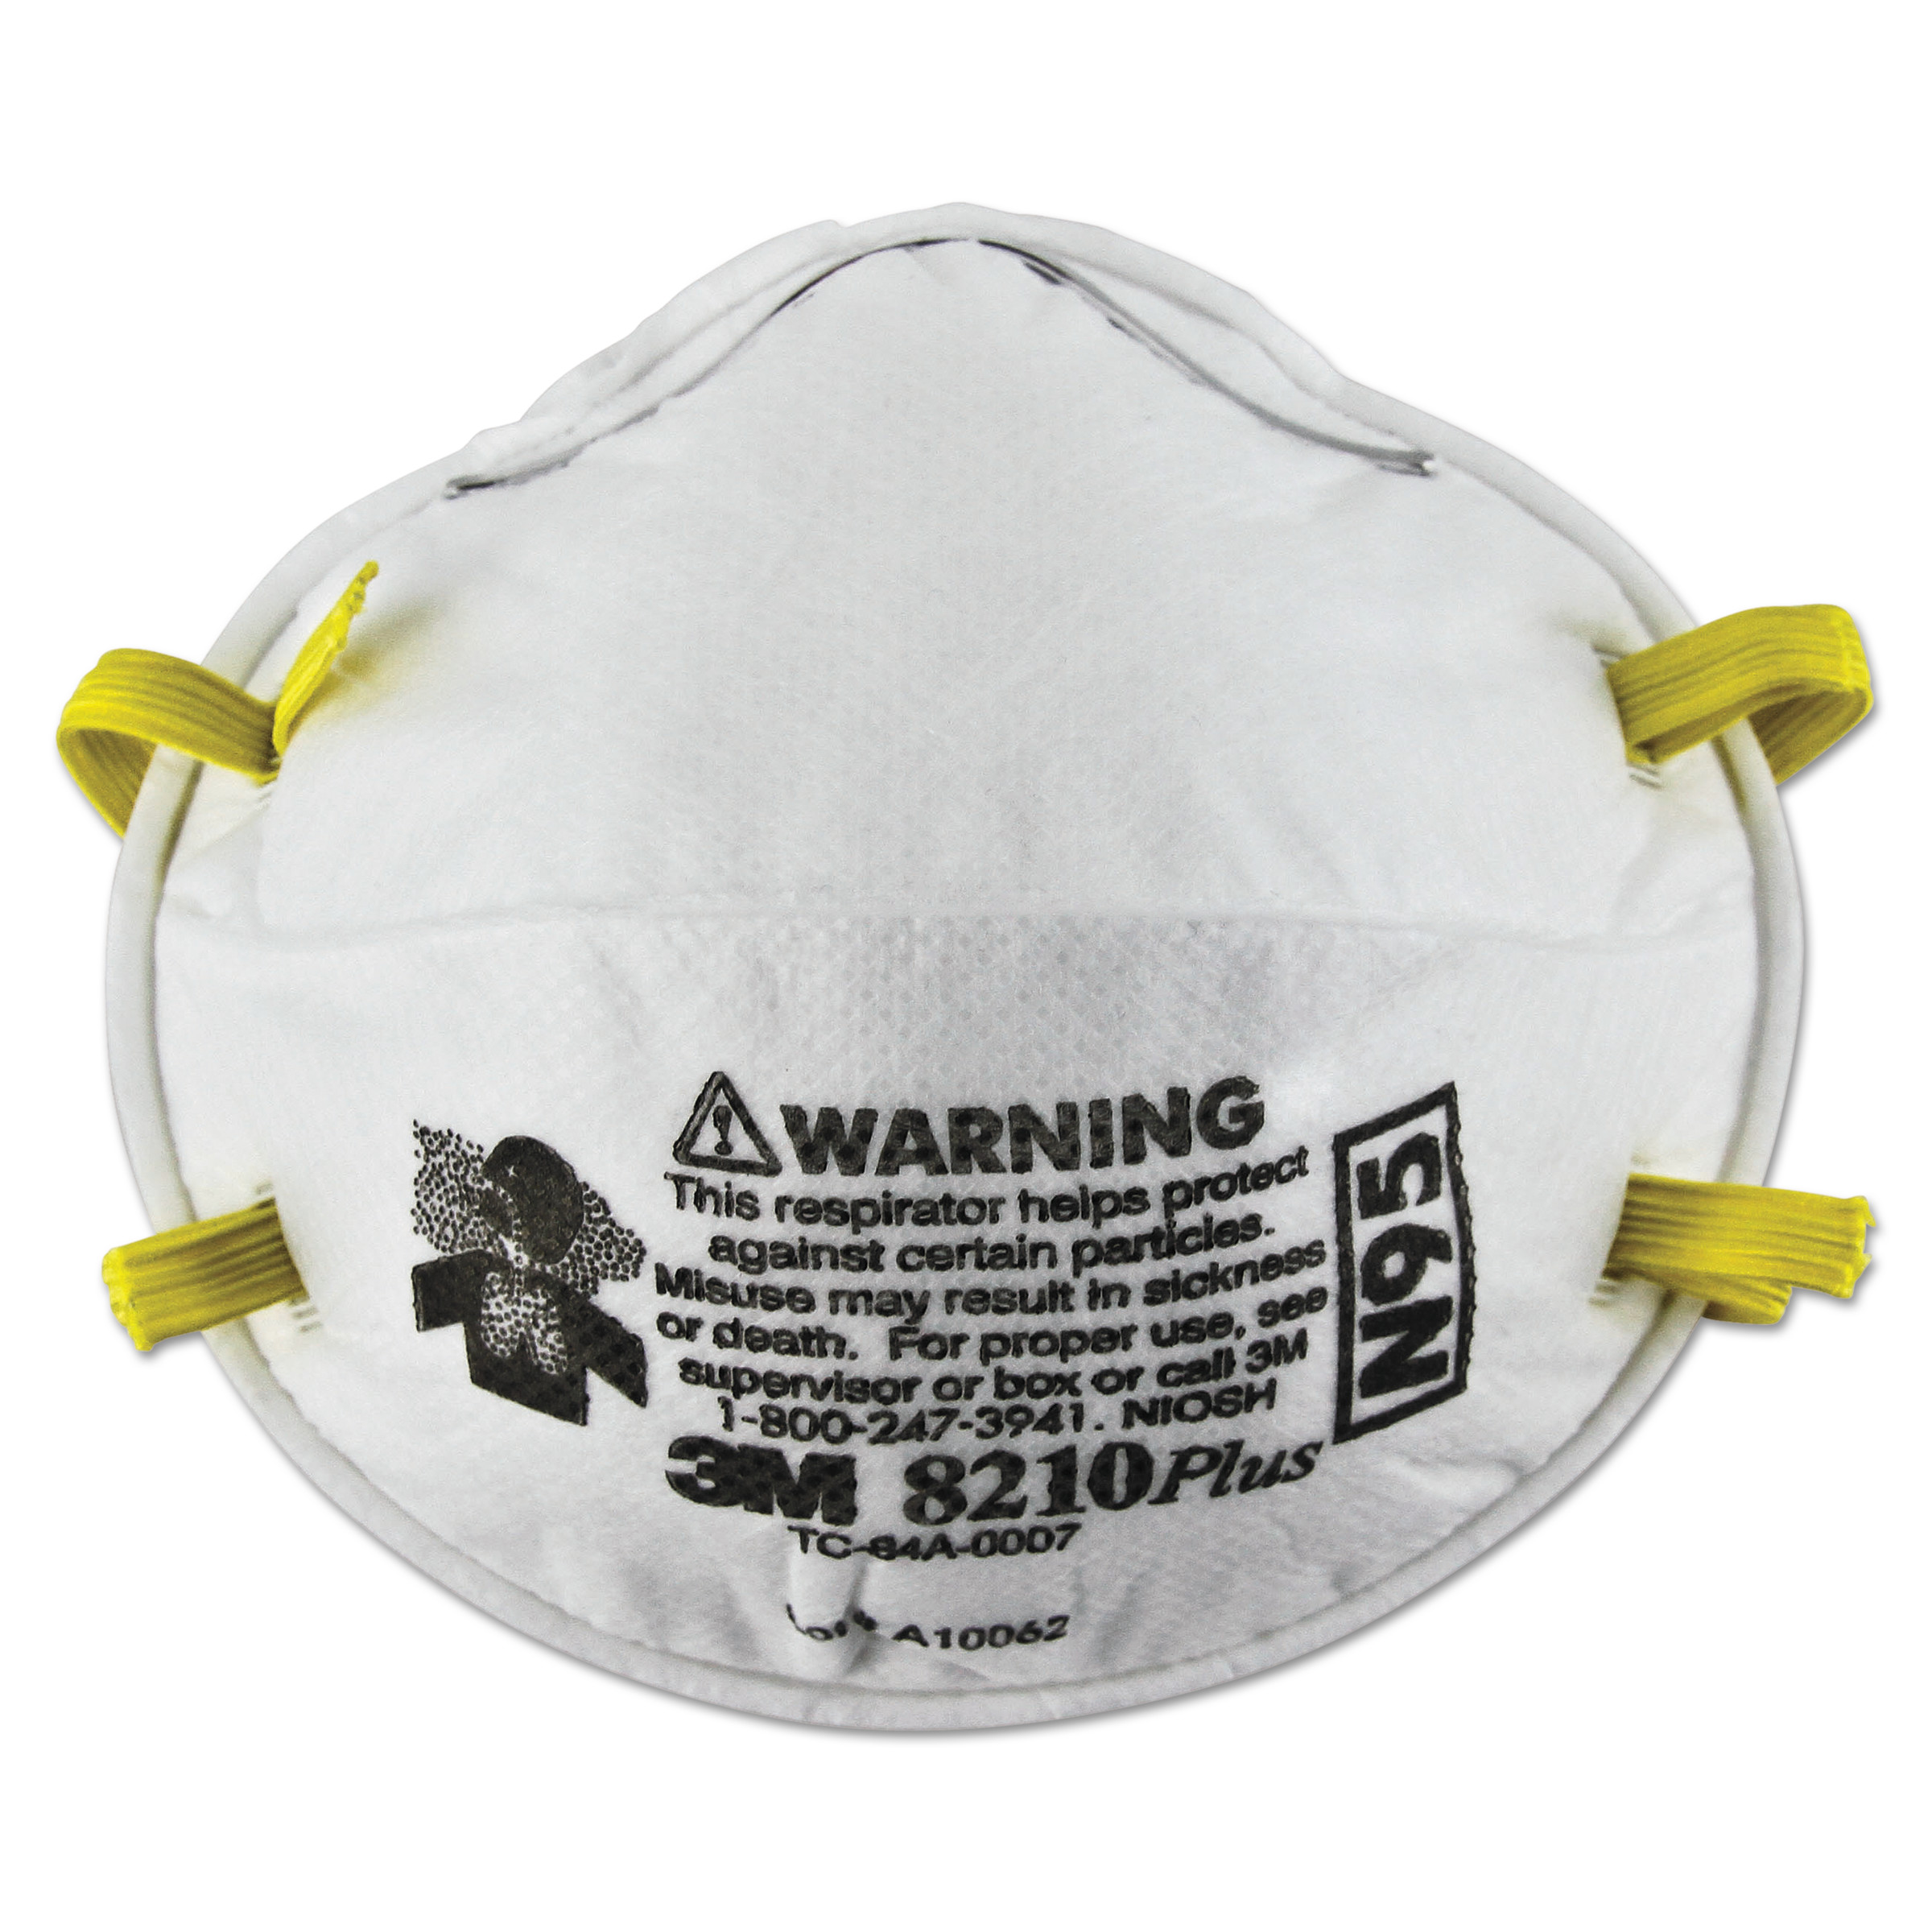 3M 8210PLUS N95 Particulate Respirator by 3M/COMMERCIAL TAPE DIV.